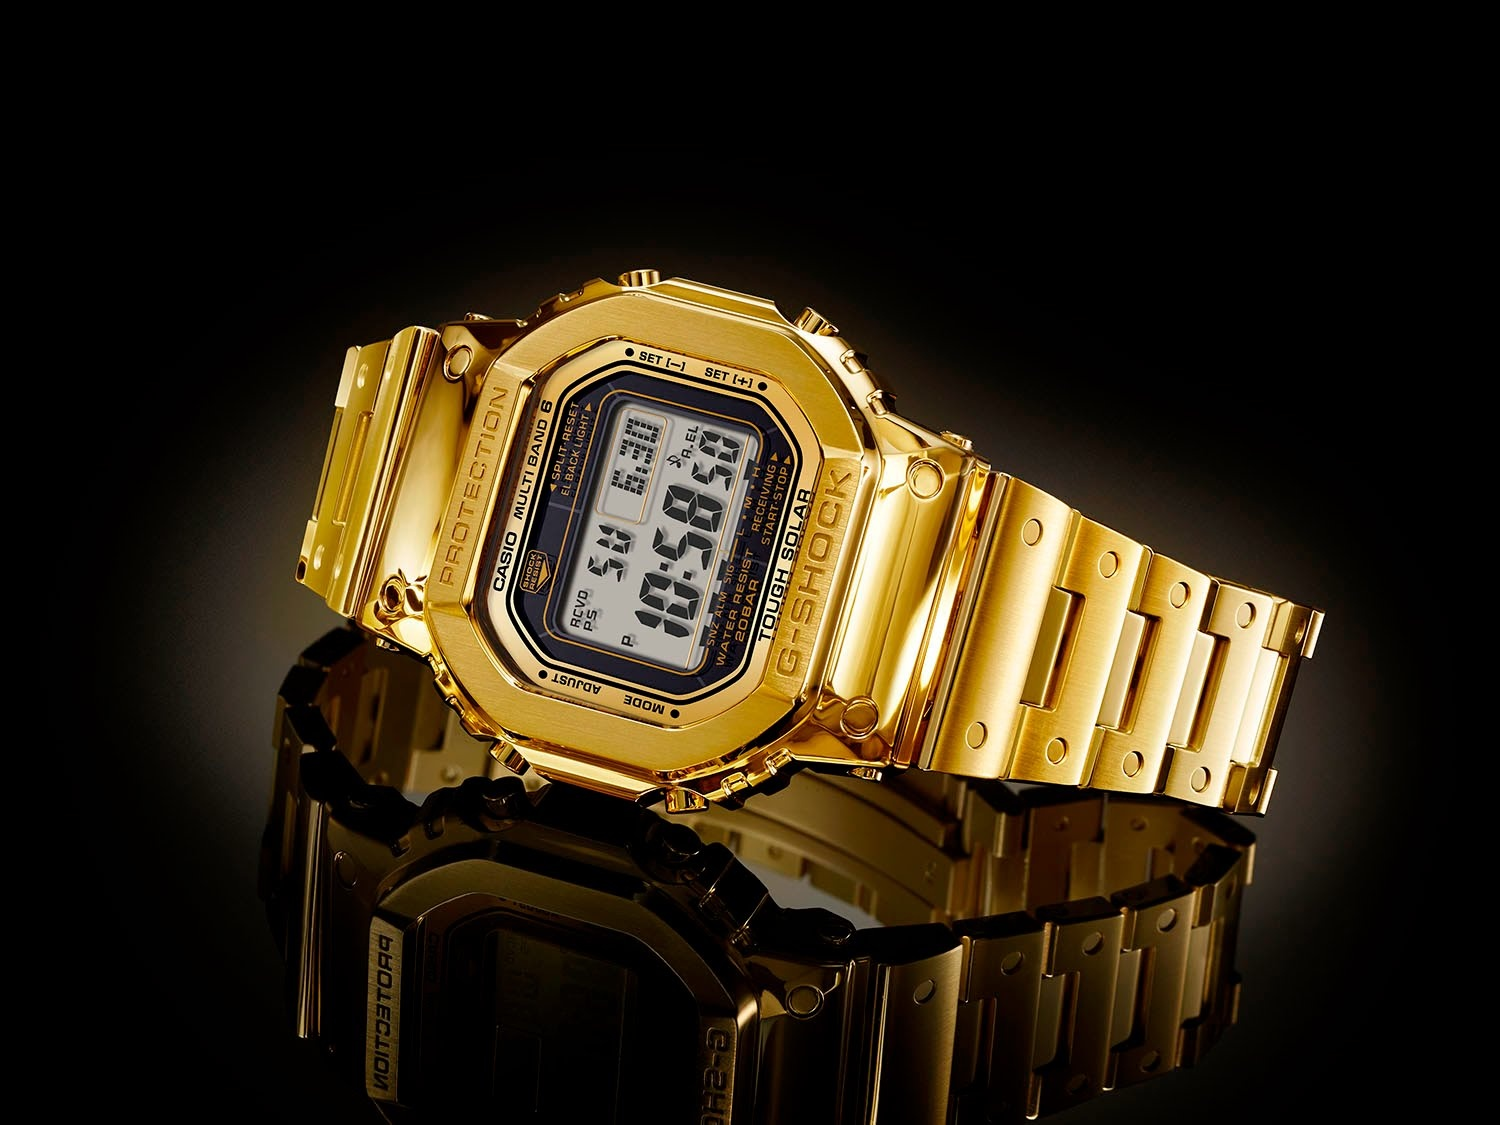 Casio G-shock Solid Gold Watches